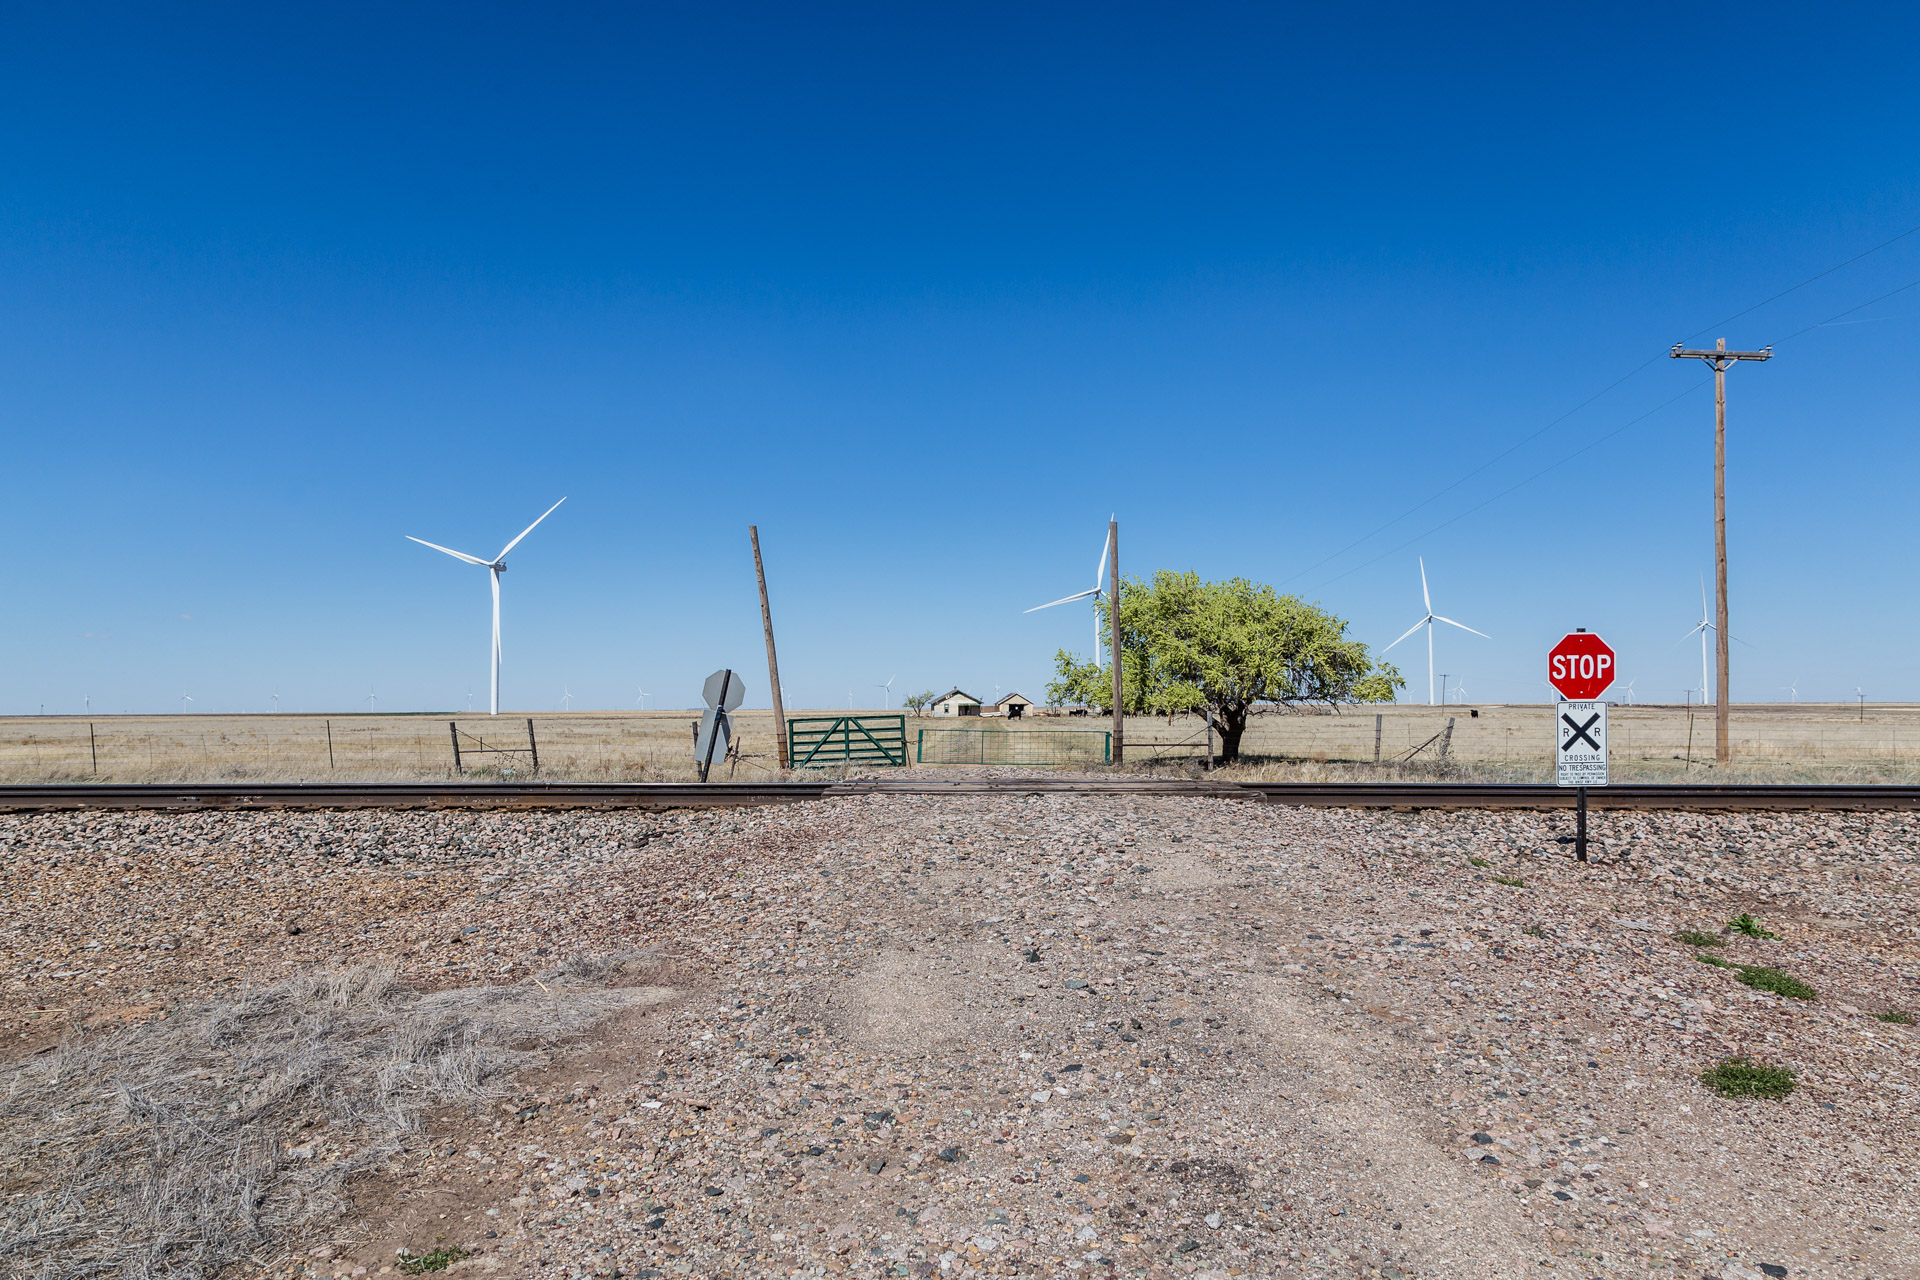 Railroad Tracks and Wind Turbines (far tracks)